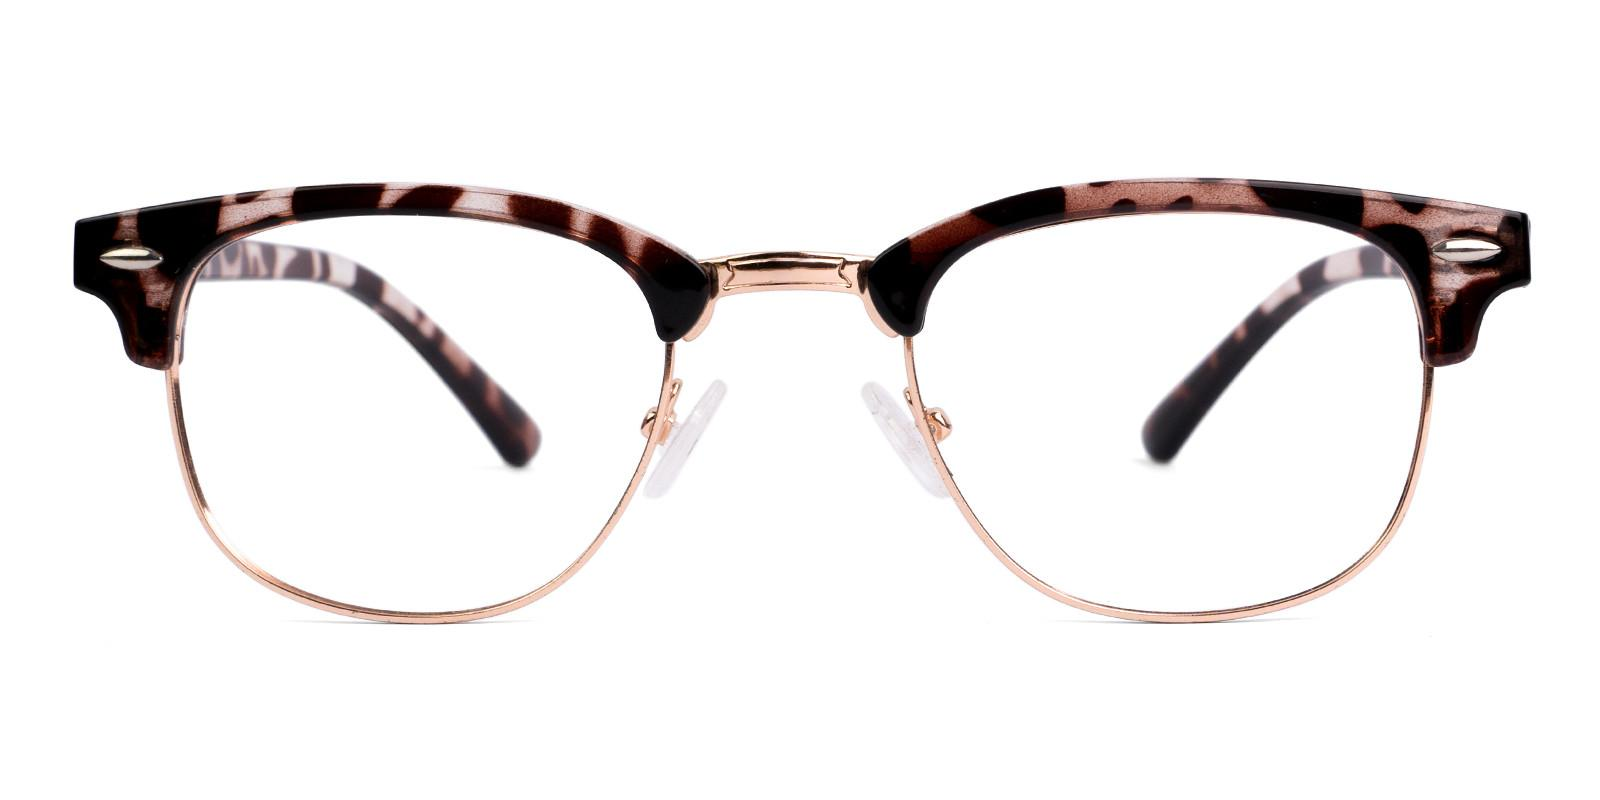 Iconium Leopard Metal , Combination , Plastic NosePads , Eyeglasses Frames from ABBE Glasses